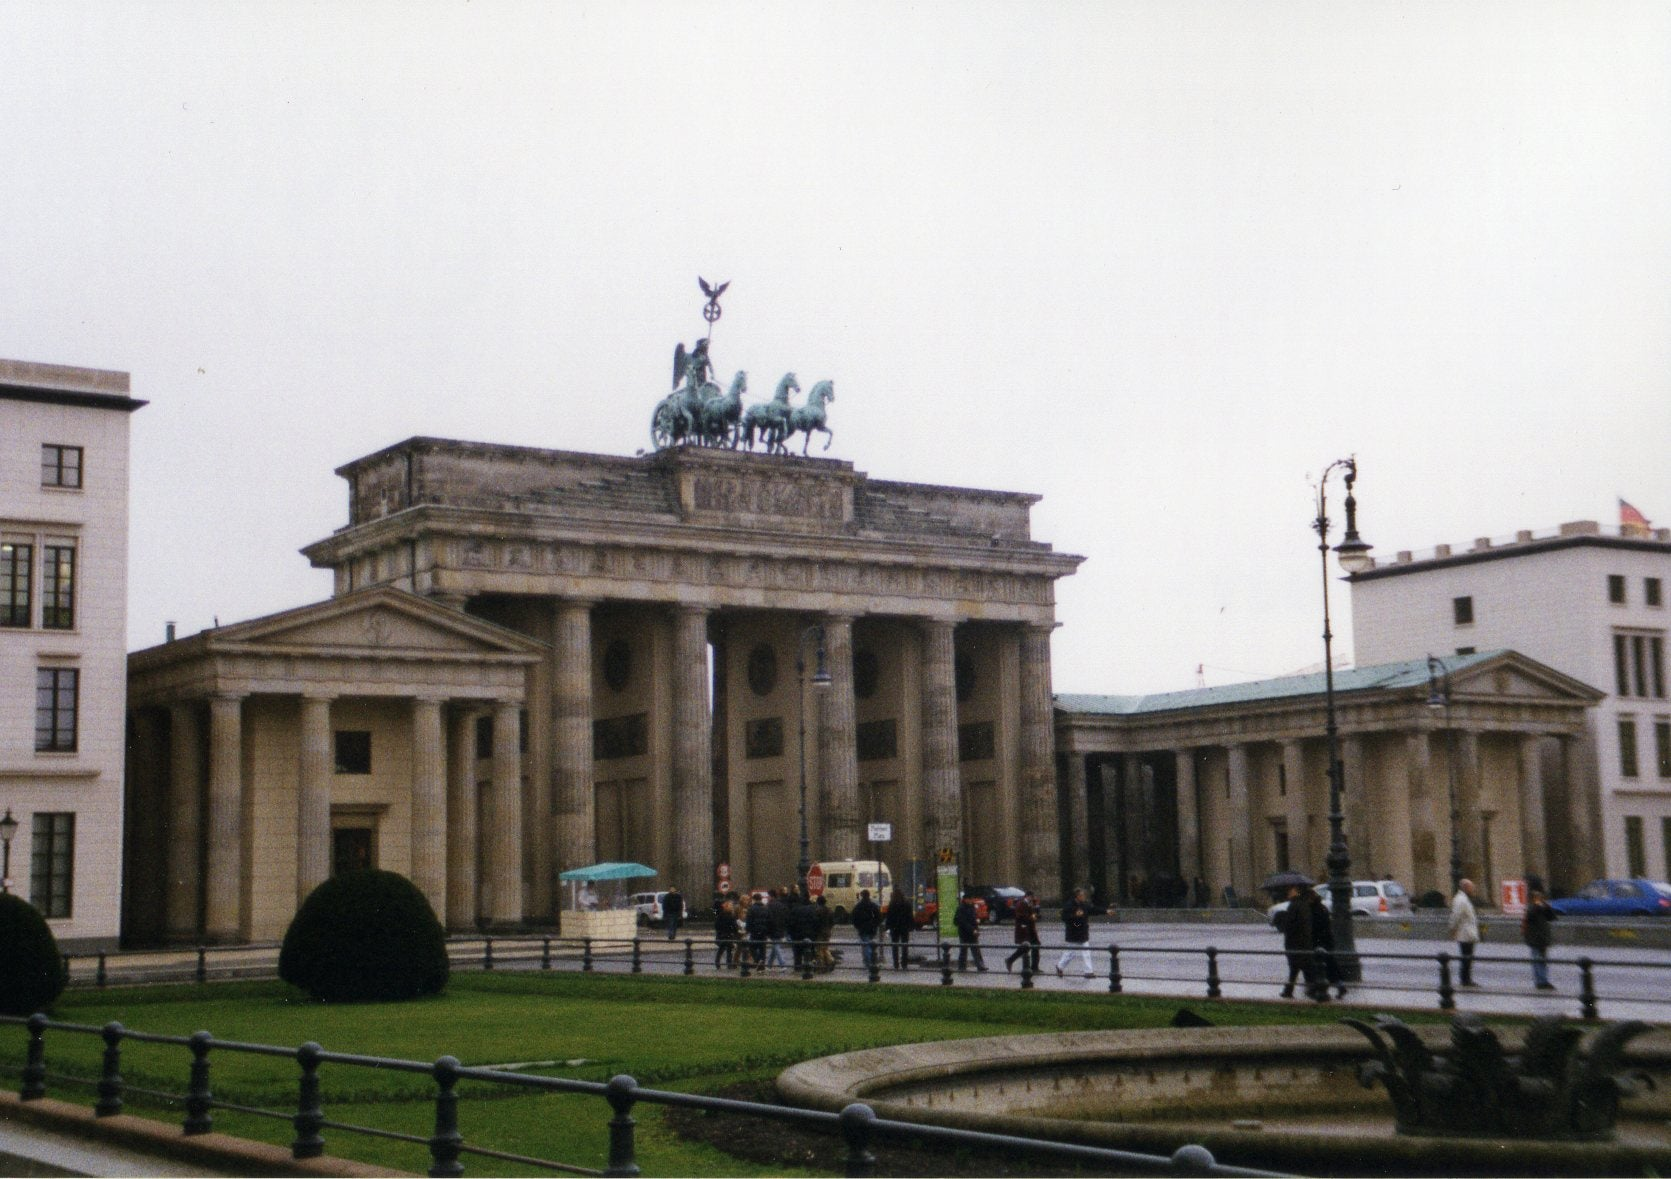 Train Station in Brandenburg Gate